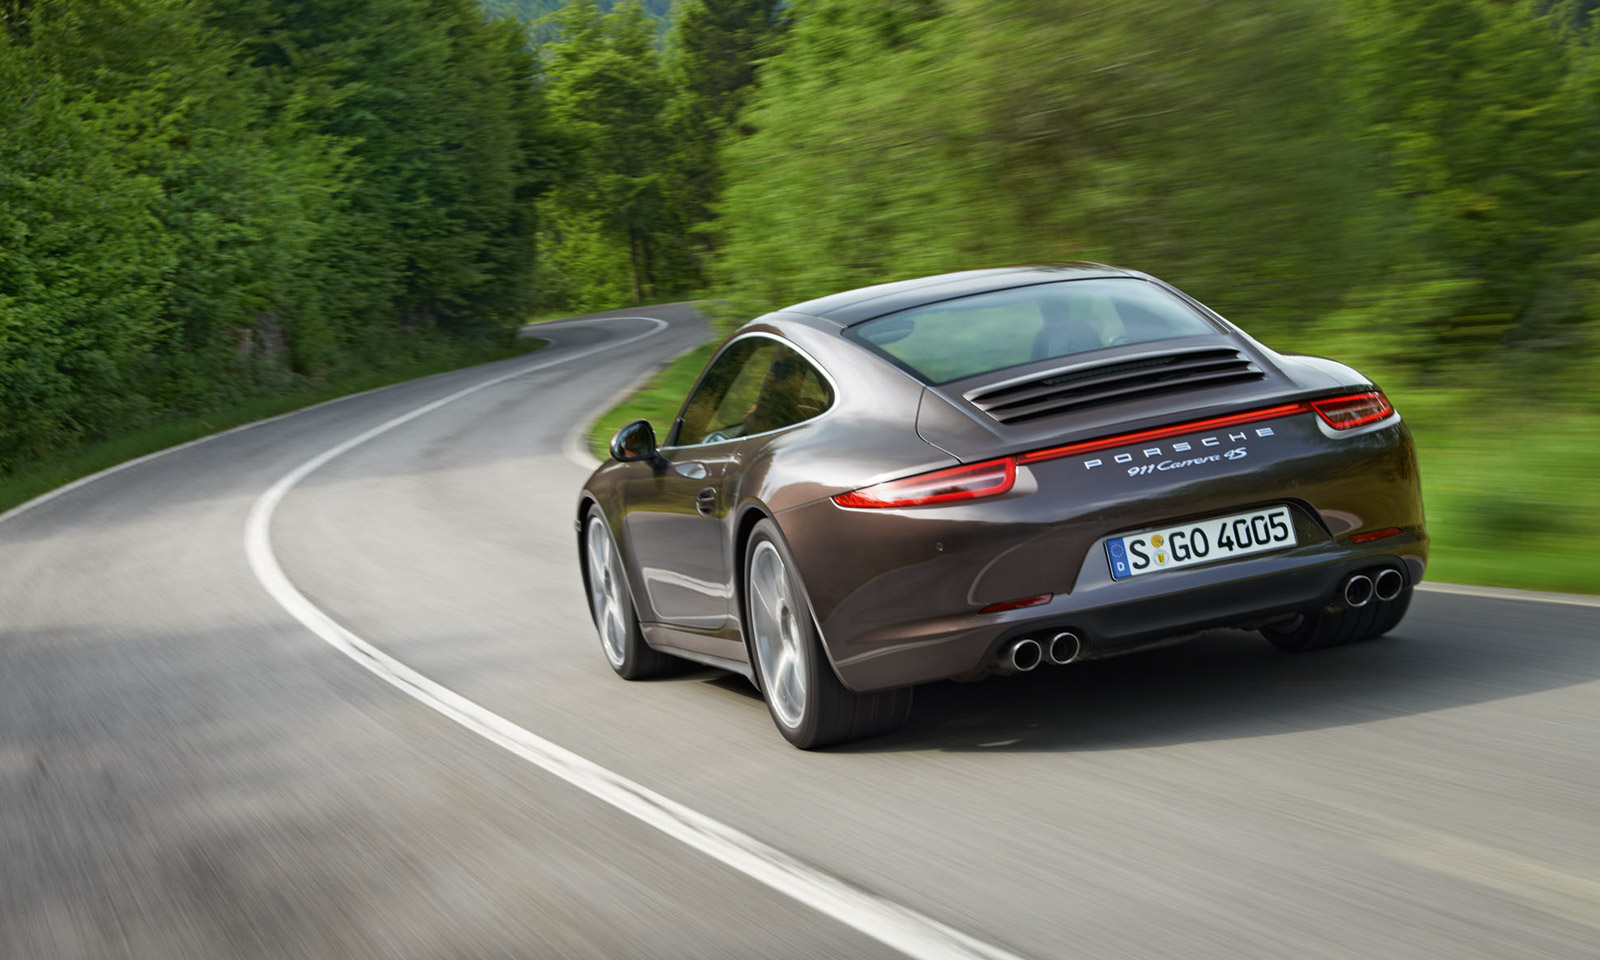 2019 Porsche 911 Carrera 4S photo - 5